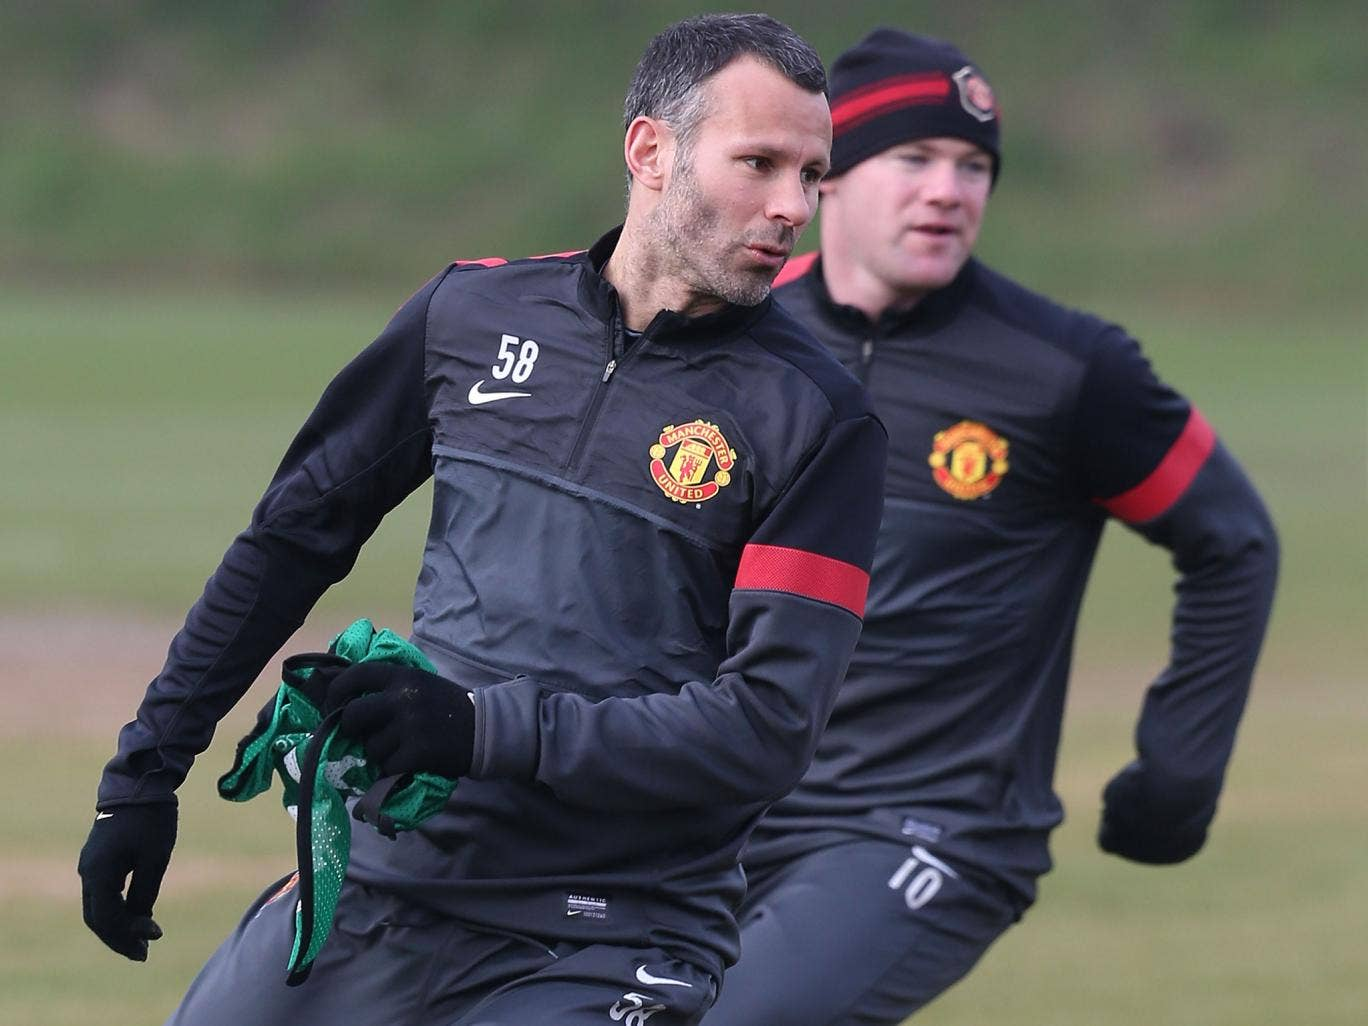 Manchester United hope Ryan Giggs' appointment as player-coach will persuade Wayne Rooney to stay at club